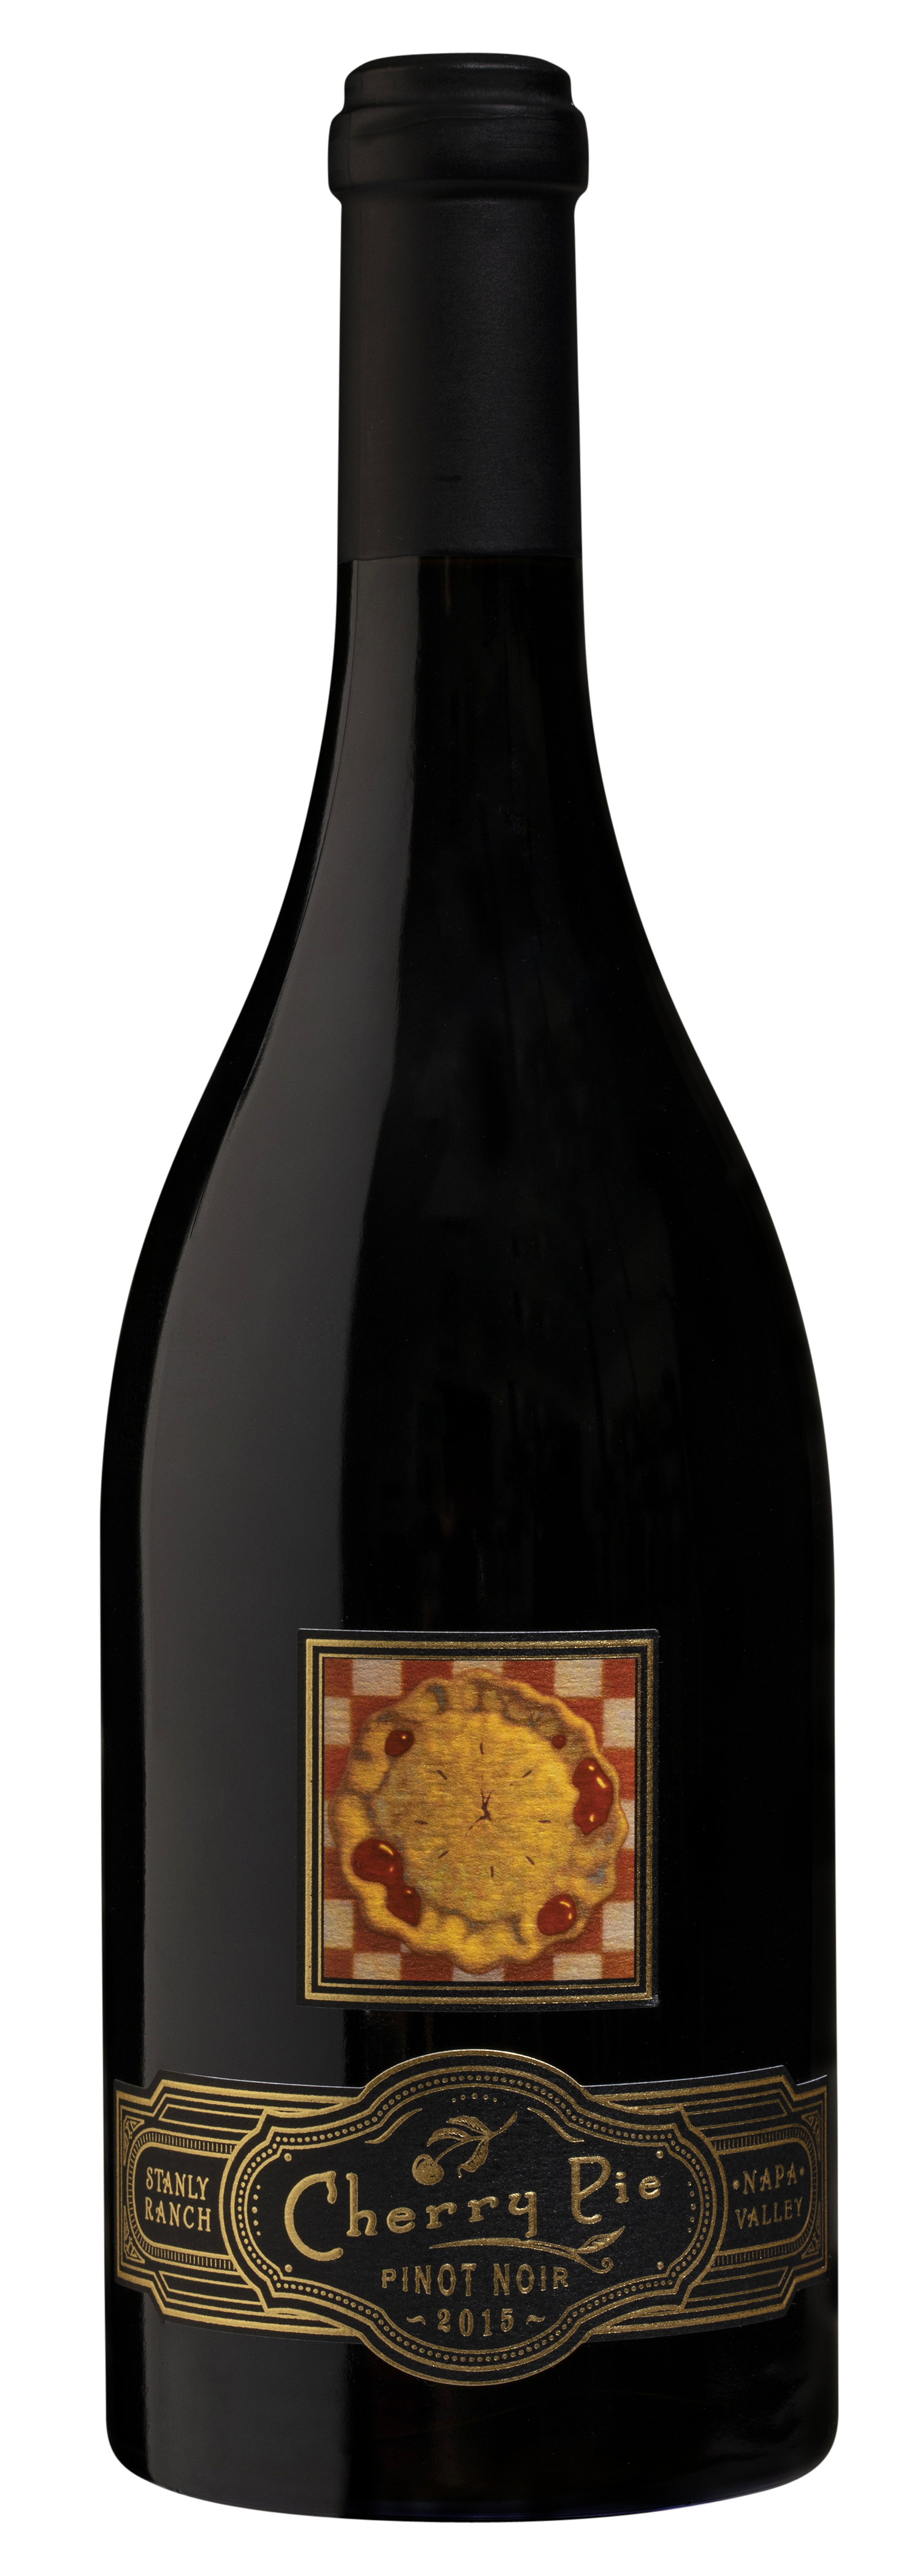 2015 Cherry Pie Stanly Ranch Pinot Noir, Carneros, 750ml